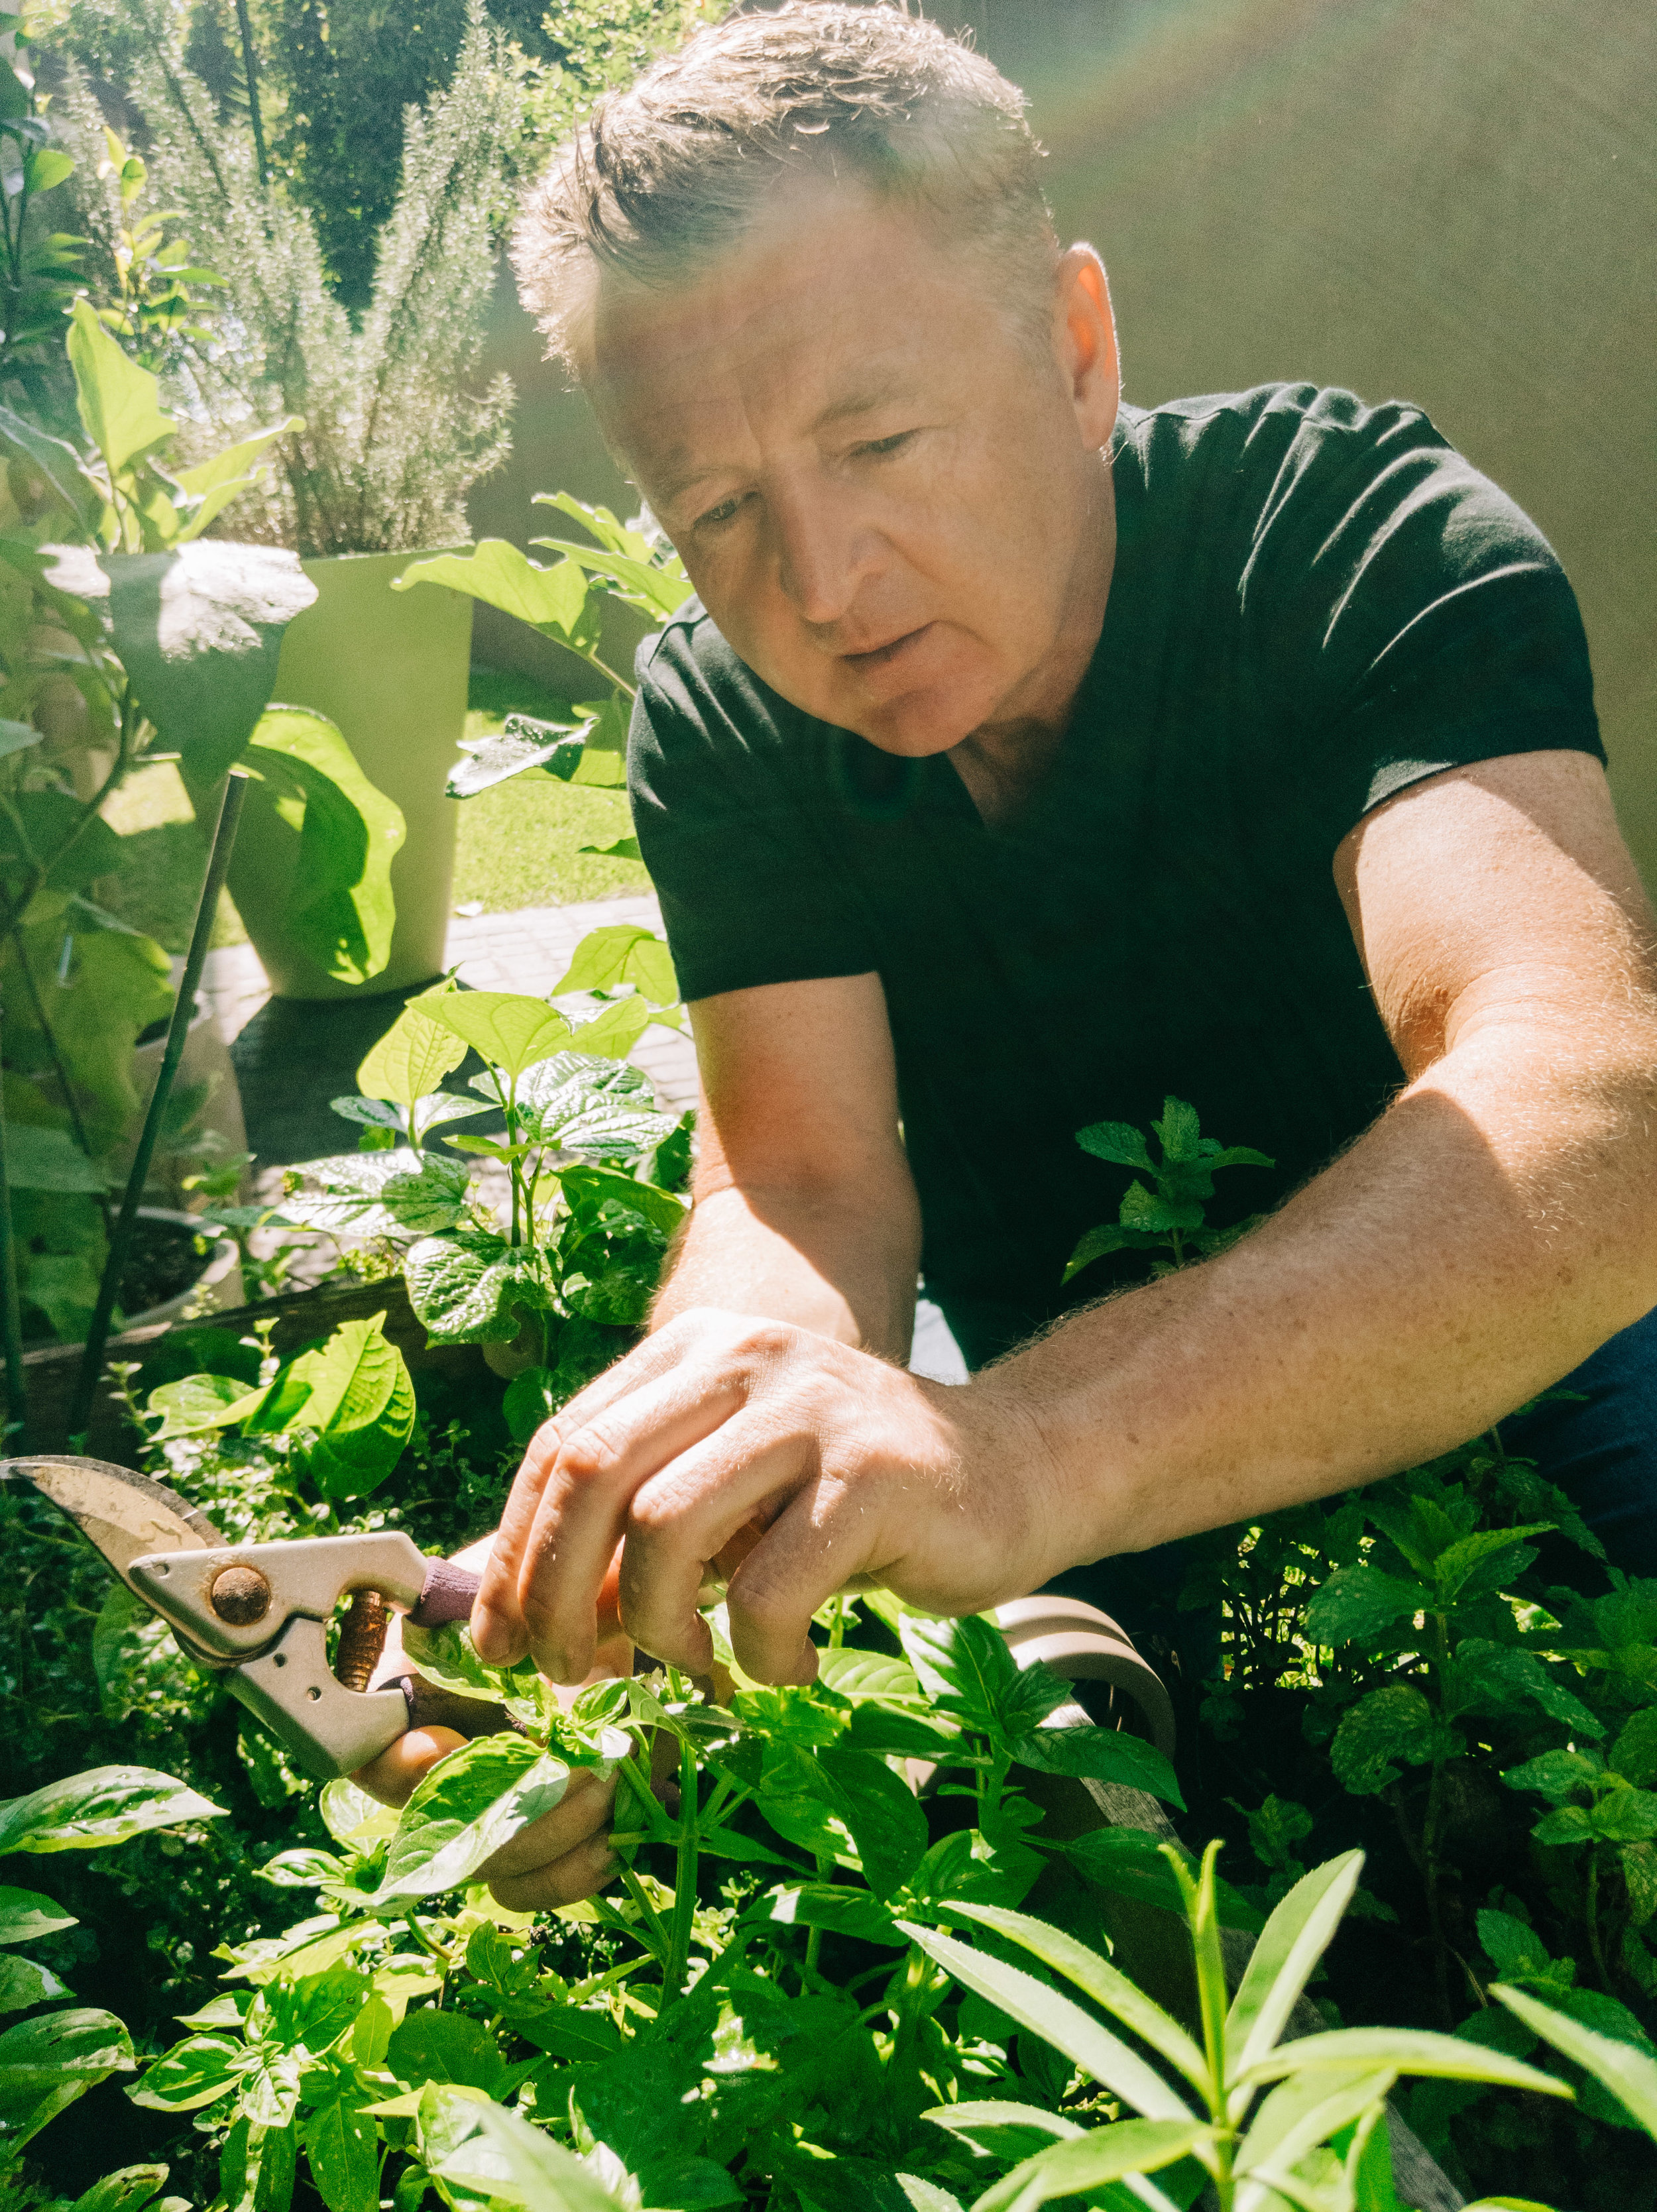 Here I am picking out some of my favourite fresh herbs from my garden at home. I bring these into  Luke's Kitchen  every morning.